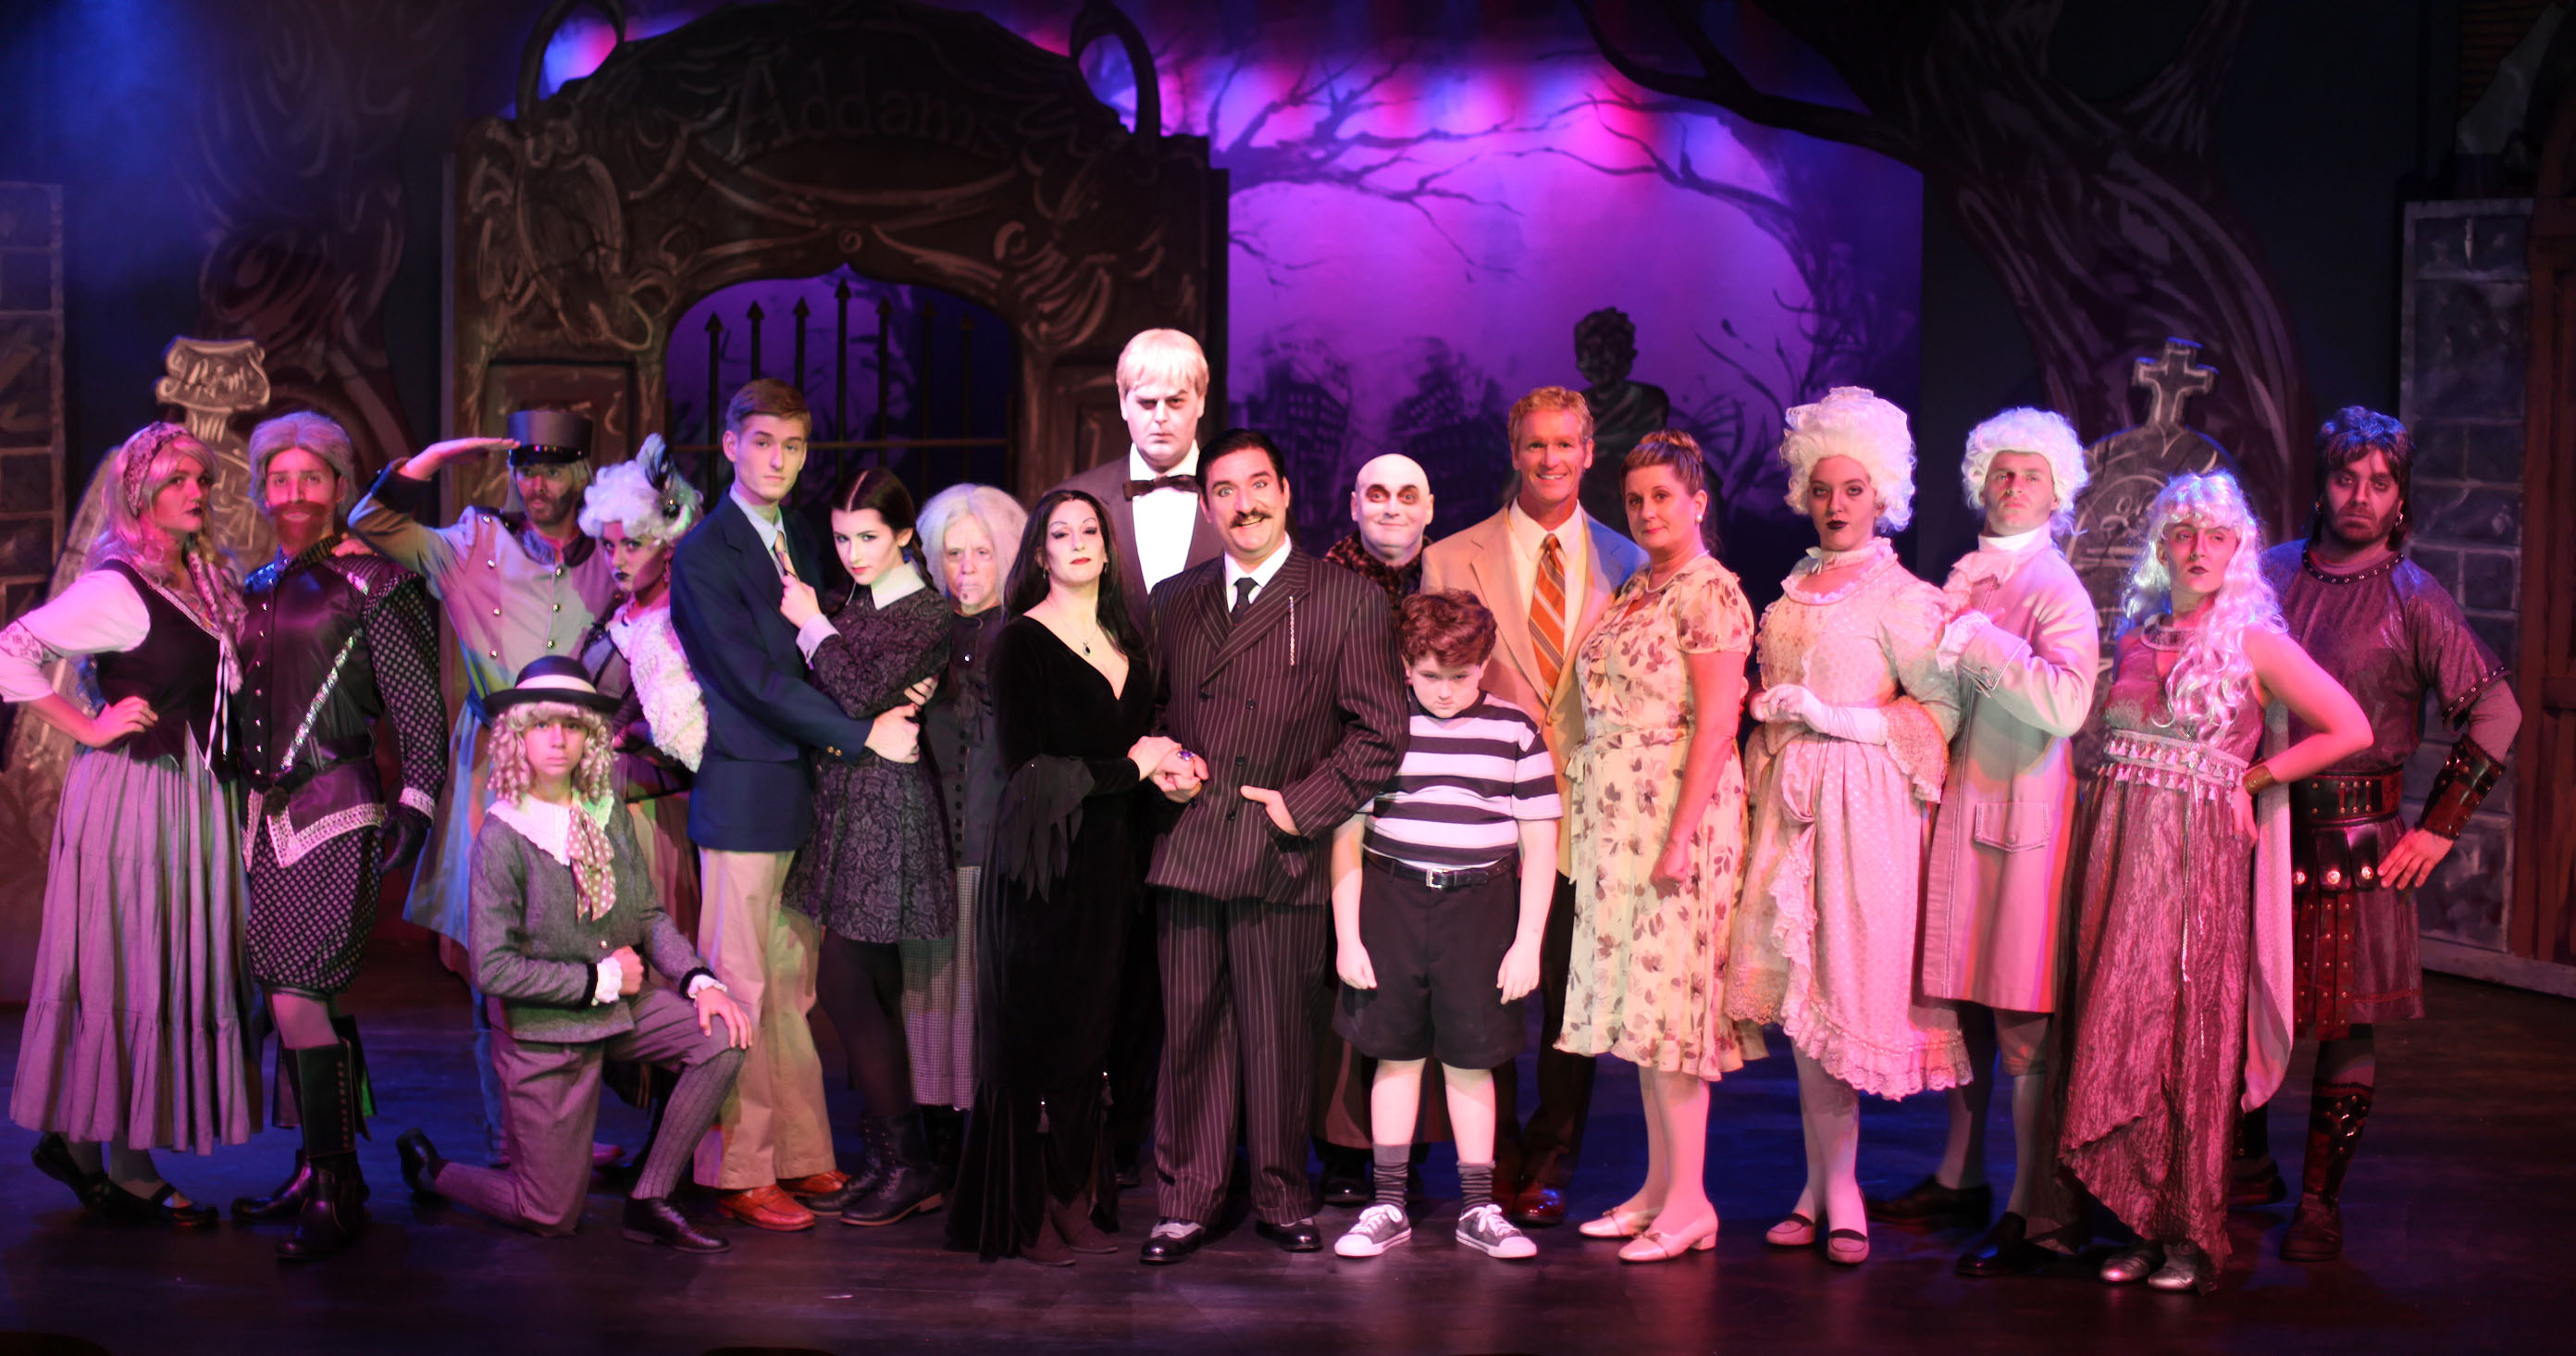 The cast of The Addams Family musical, on stage through Oct. 19 at Limelight Theatre, 11 Old Mission Ave., uptown St. Augustine. Show times are 7:30 p.m. Thursday through Saturday, and 2 p.m. Sunday. Photo by Renee Unsworth